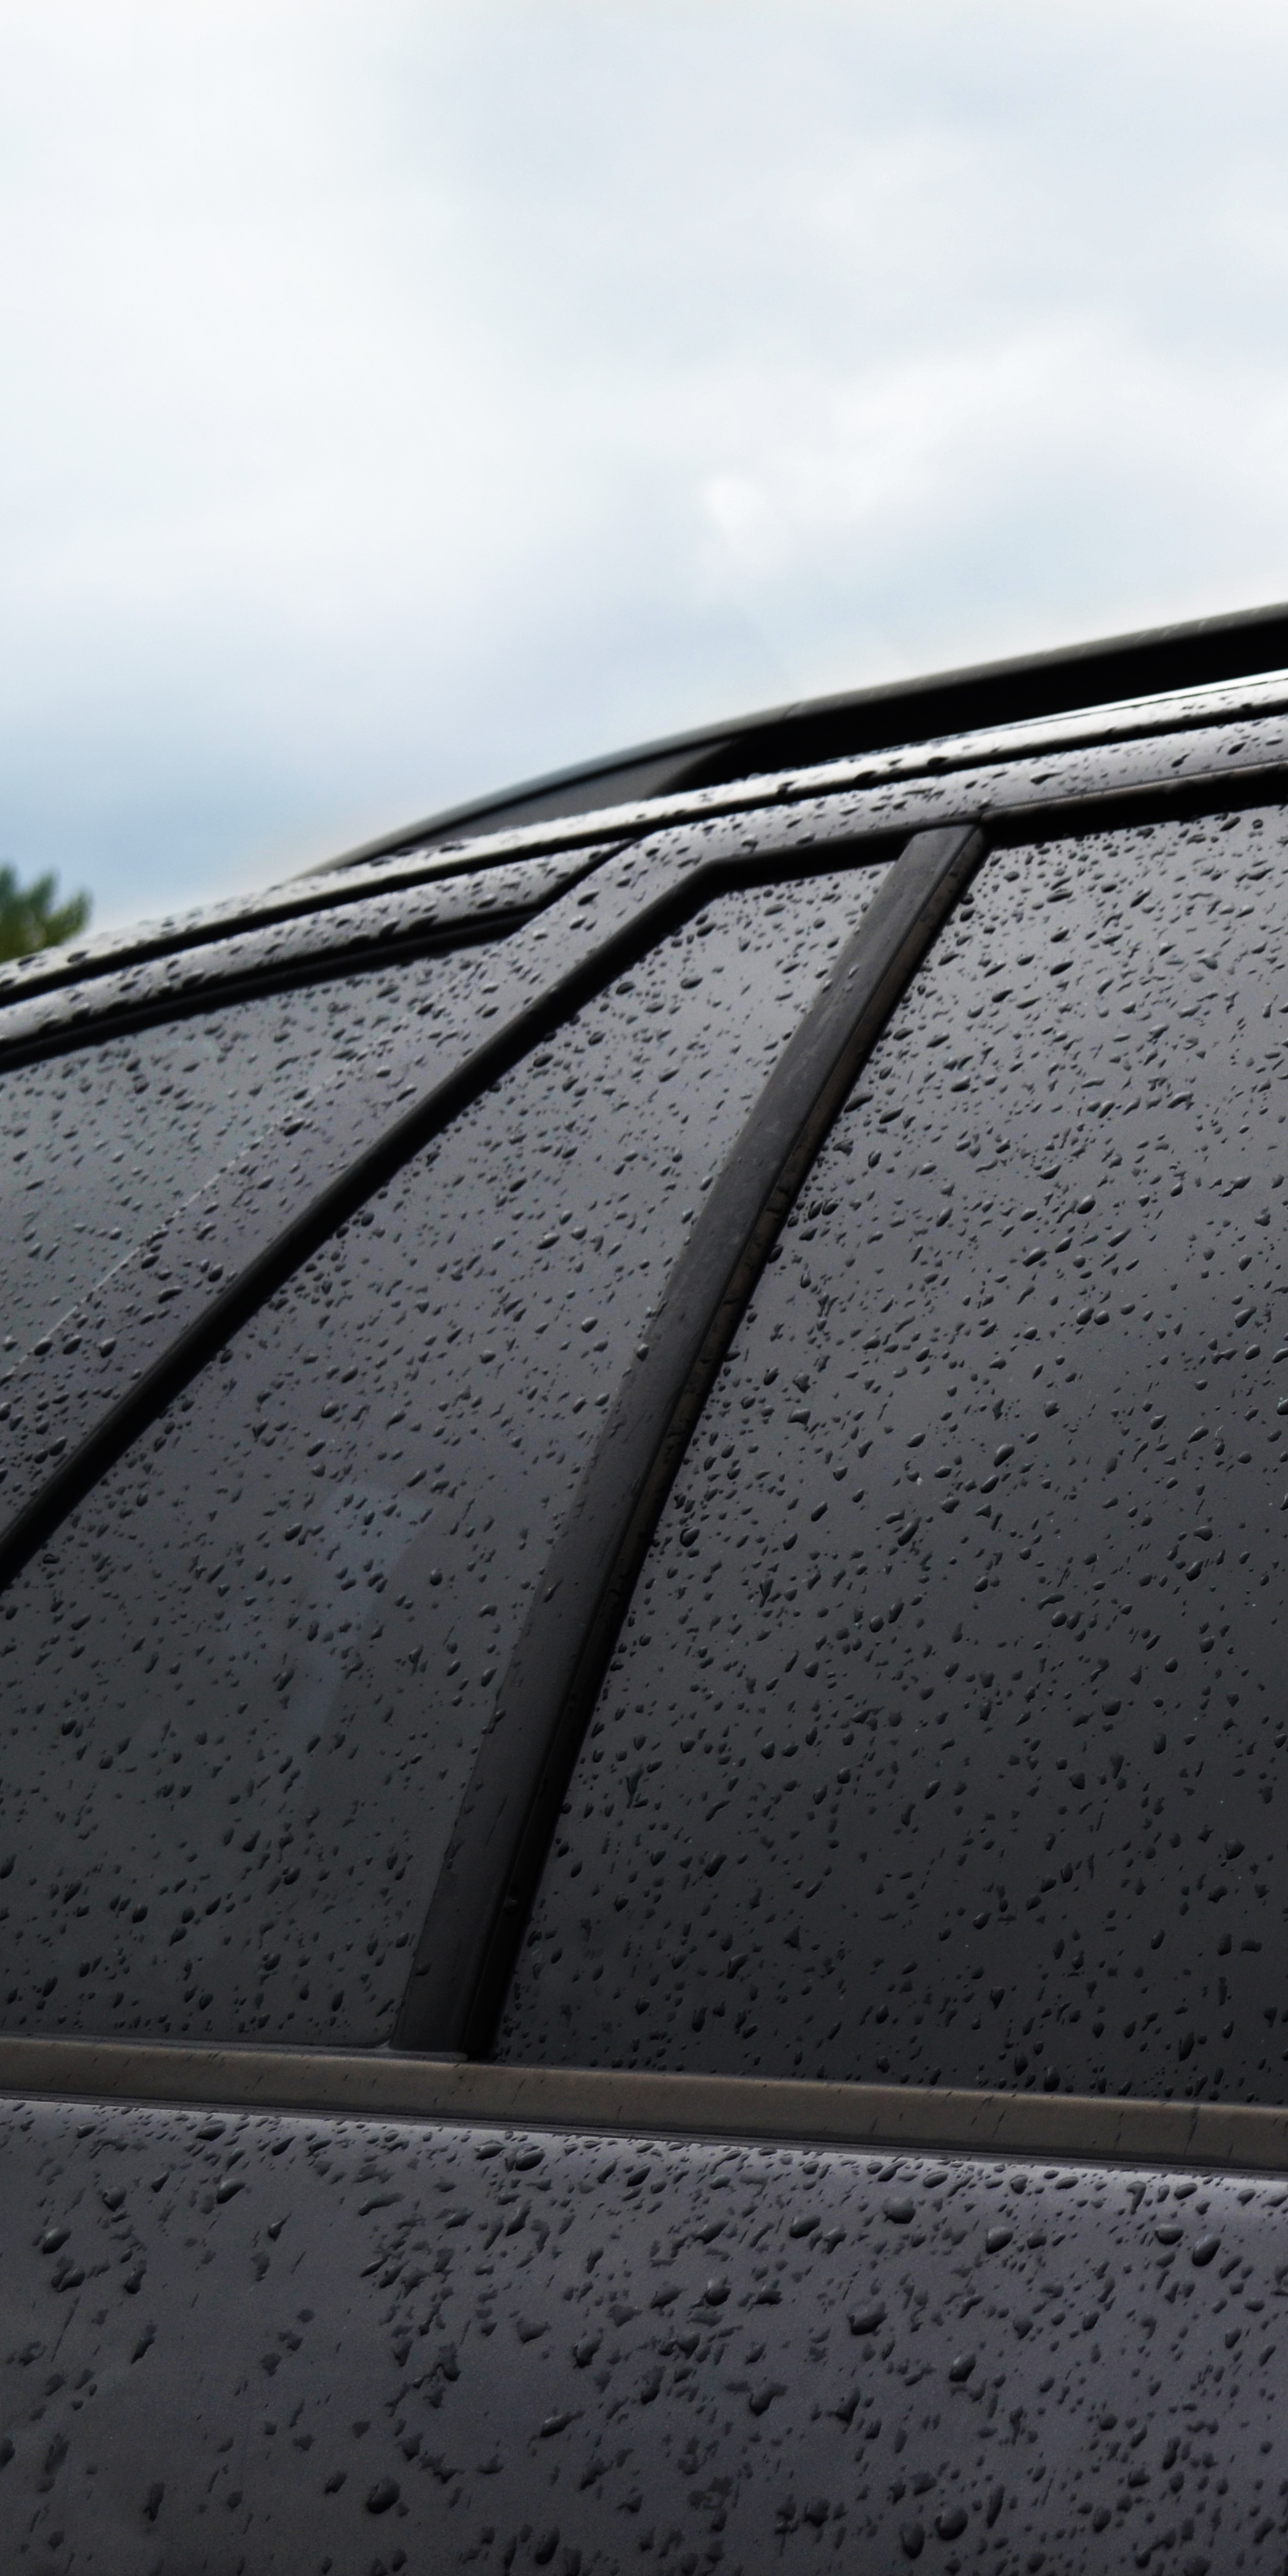 Window Tinting Film - We offer automotive window film precuts,full-service same-day installation, and architectural window films.Learn more ➝